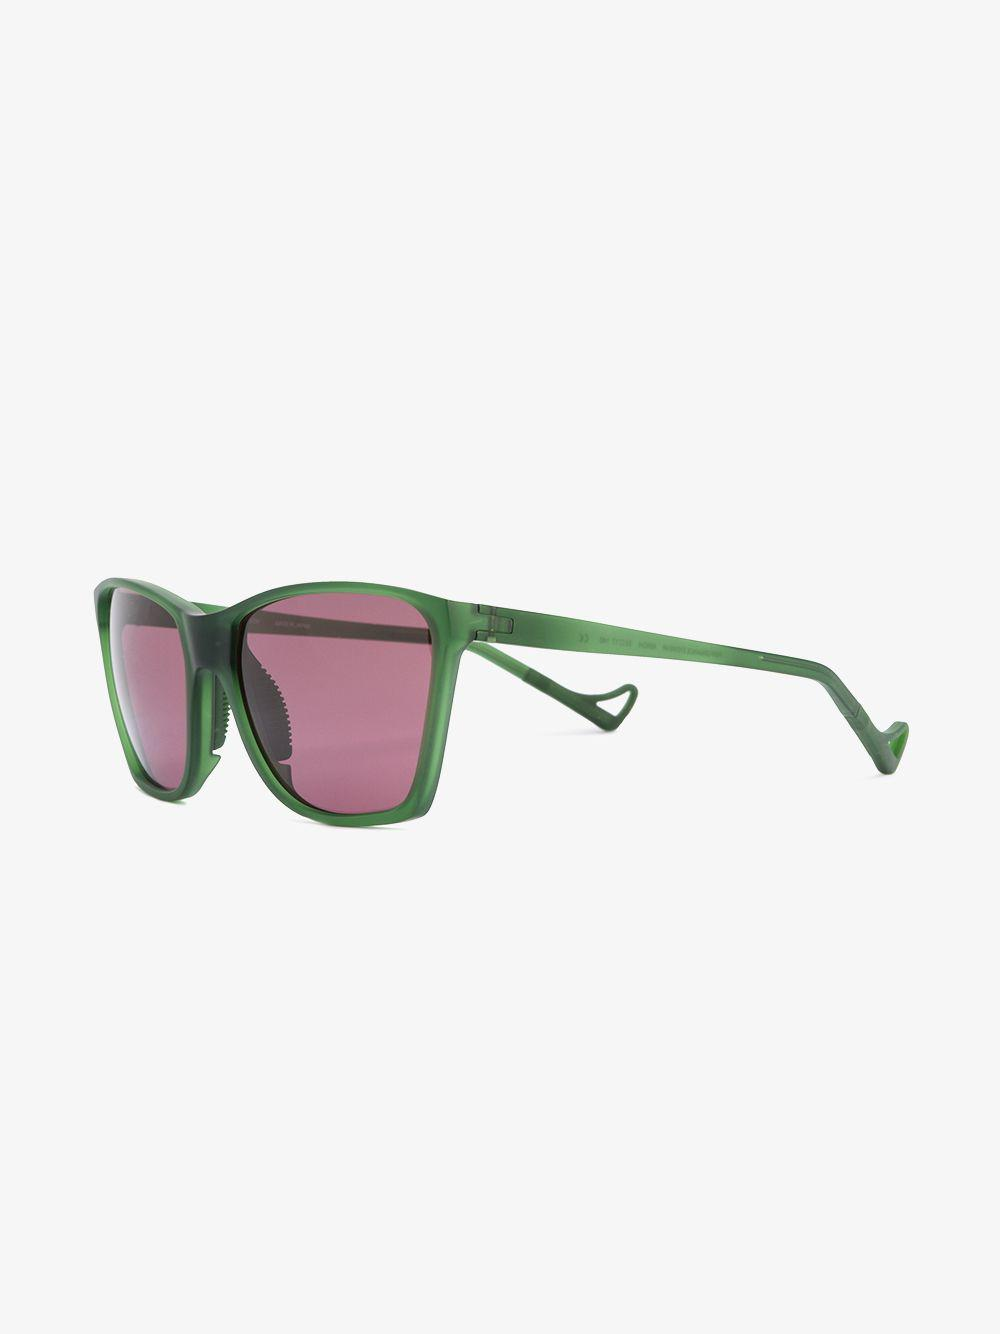 fa541d3b91b Lyst - District Vision Green Keiichi District Sky G15 Sunglasses in Green  for Men